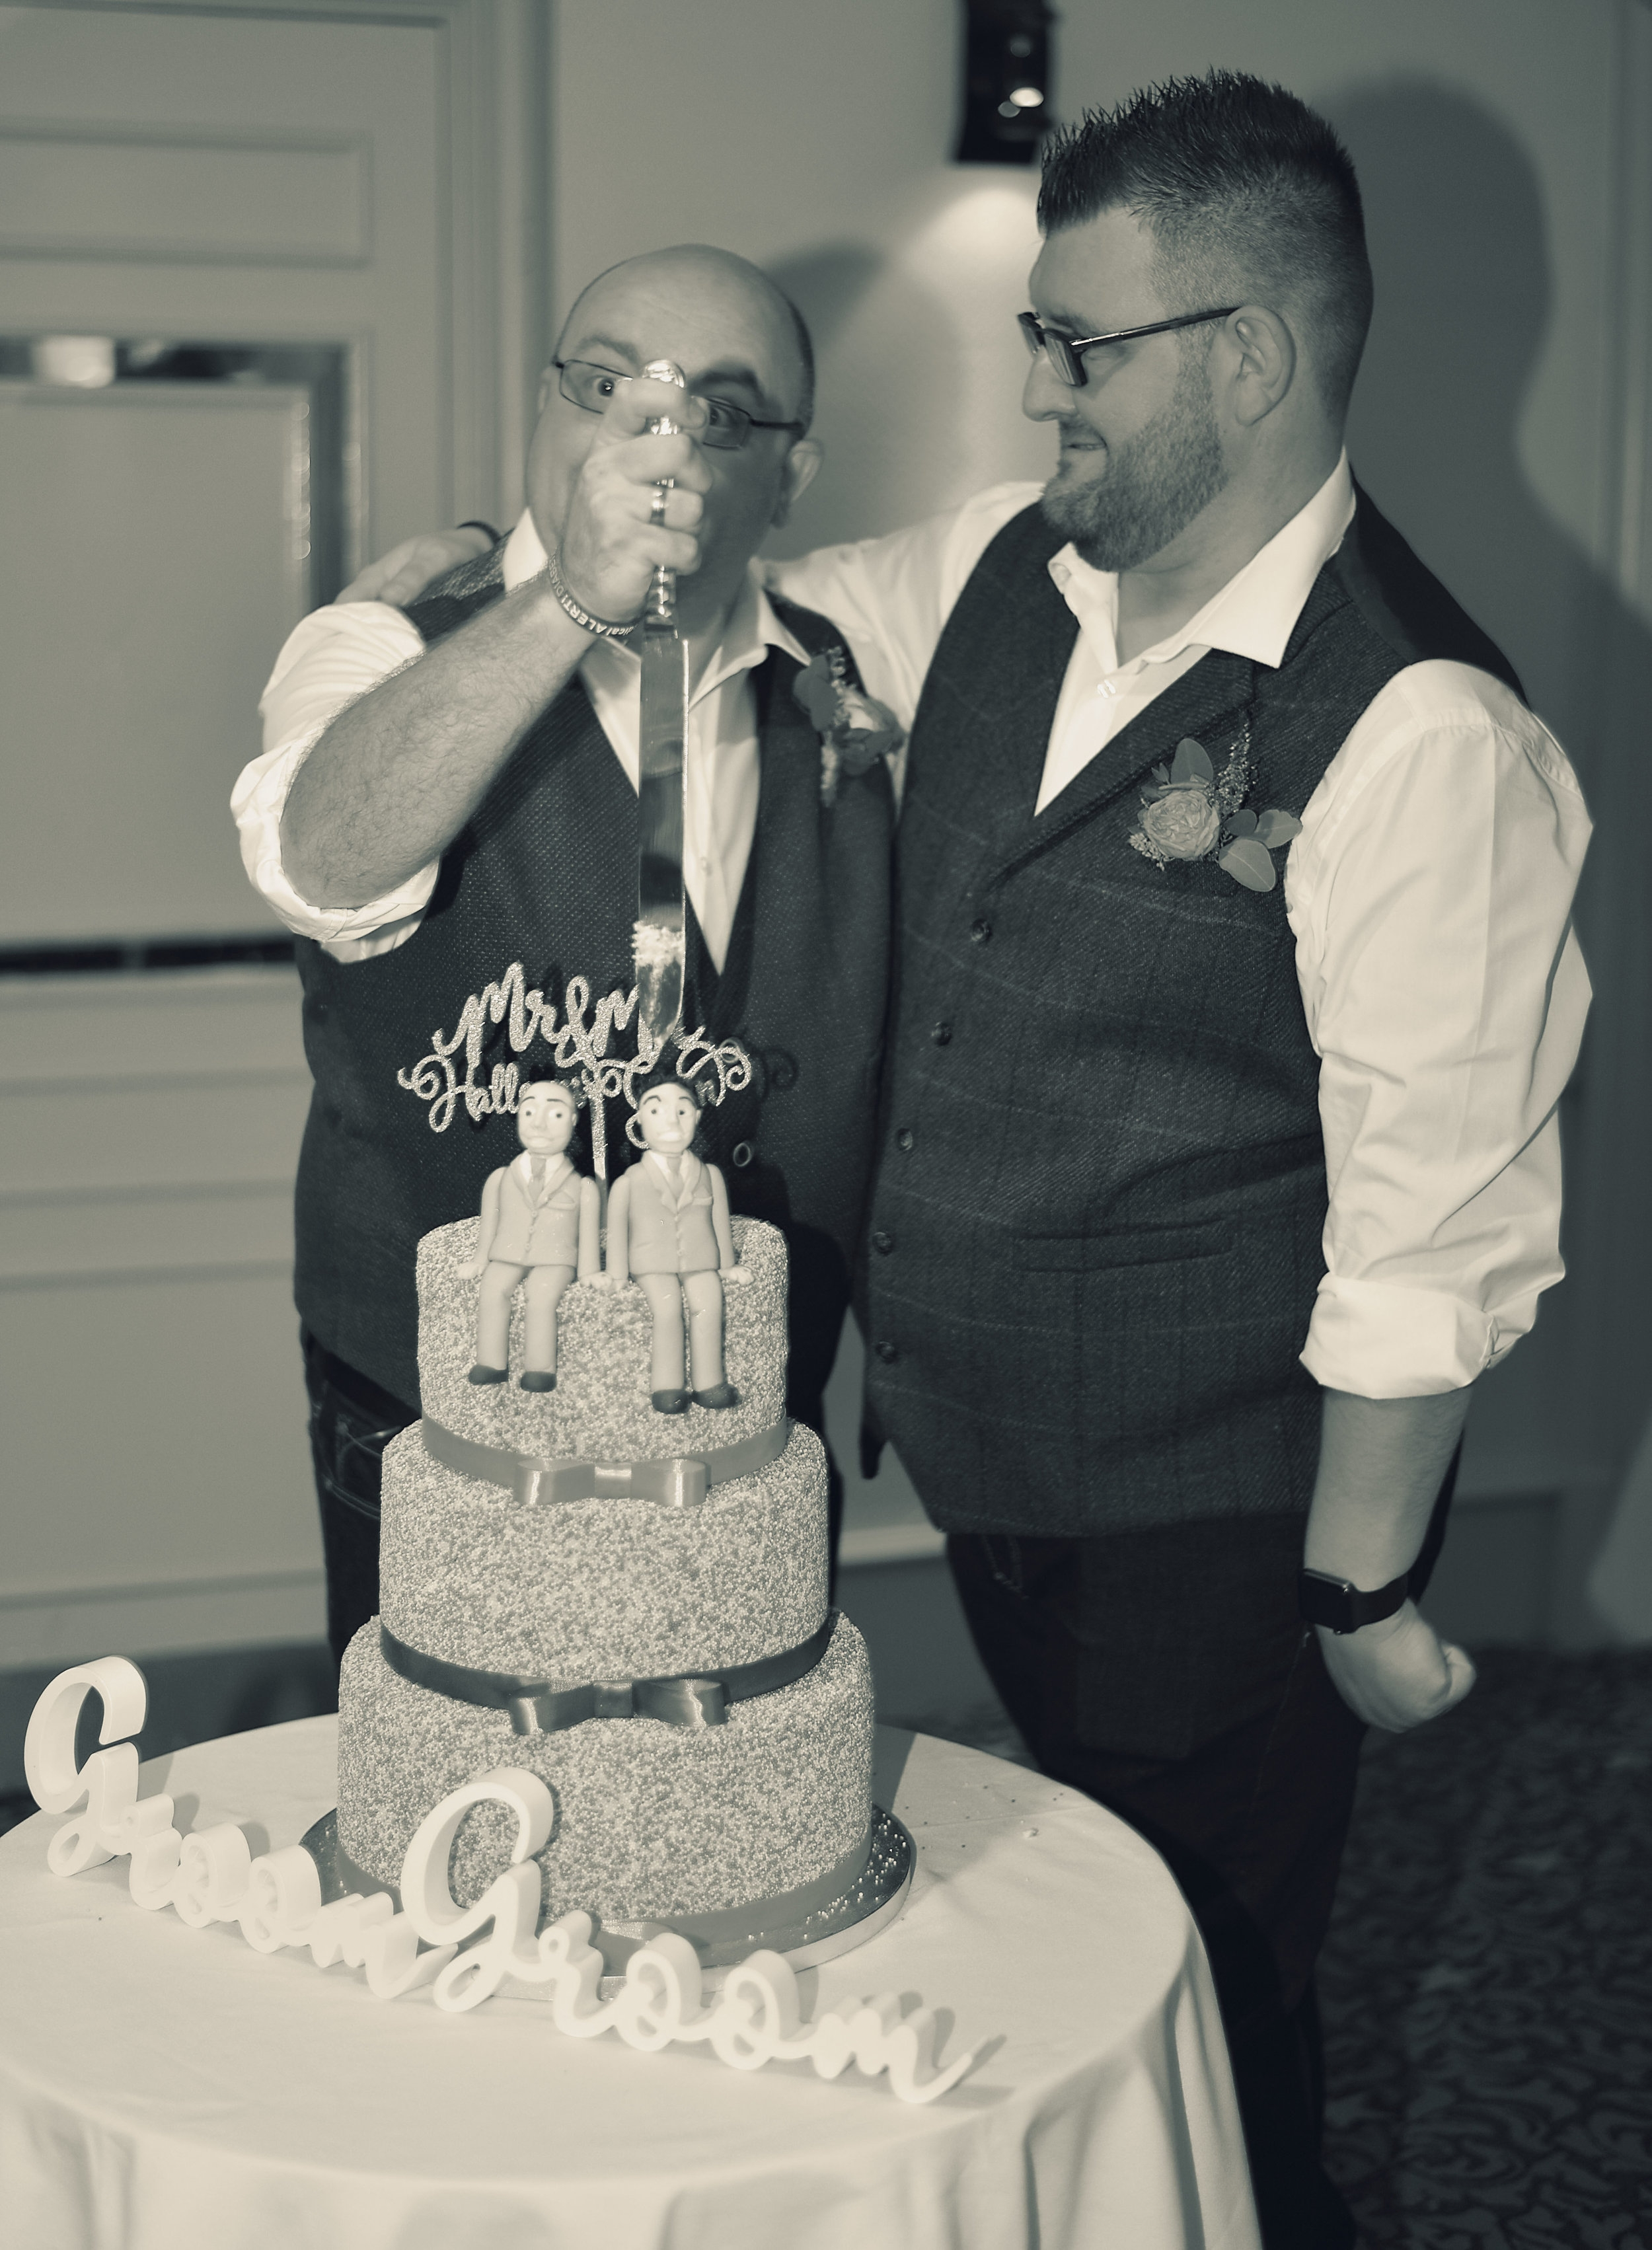 In September 2018 I was chosen by Jay and Steve to be their photographer at their wedding in Cardiff. - The wedding of Jay and Steve was one of the most emotional, yet happy experiences of my life. Witnessing the coming together of two people and their genuine love for each other and the admiration from their guests made their day a truly memorable event, and one in which I documented right from the start of the day, until well into the evening. I'll be forever grateful for being able to photograph their special day for them.